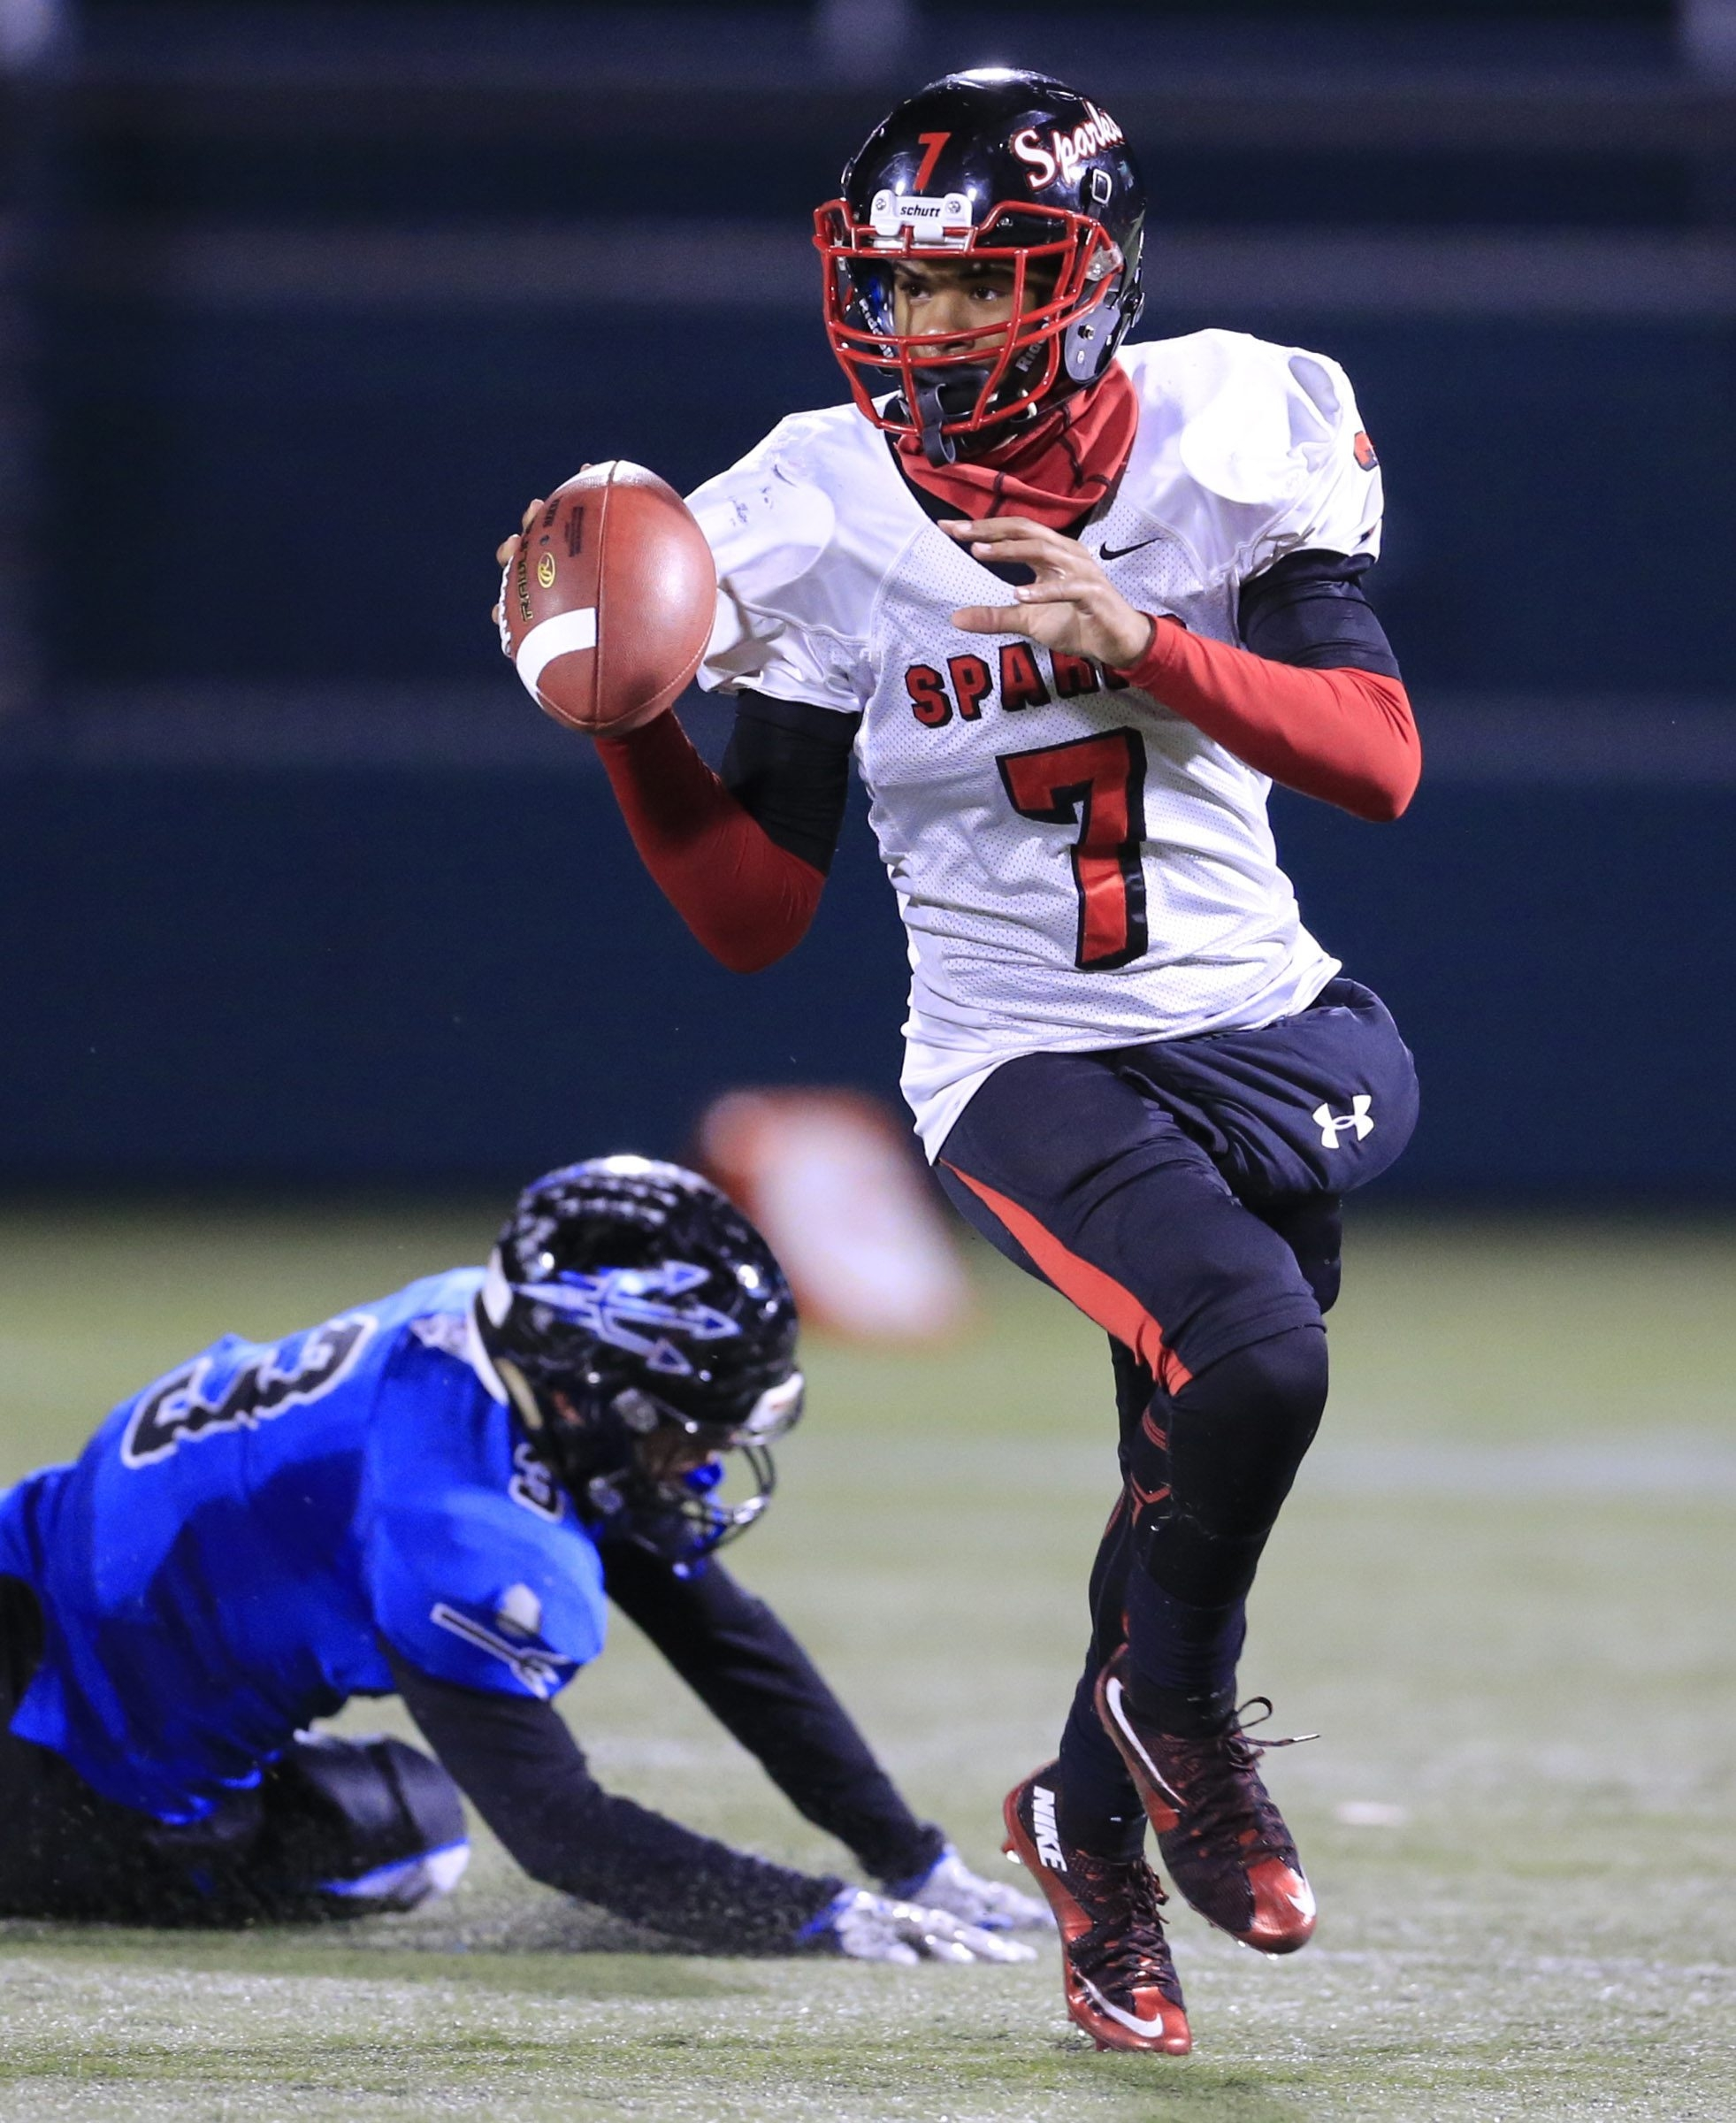 South Park quarterback Tyree Brown will enjoy playing in the climate-controlled dome stadium in Syracuse on Friday.